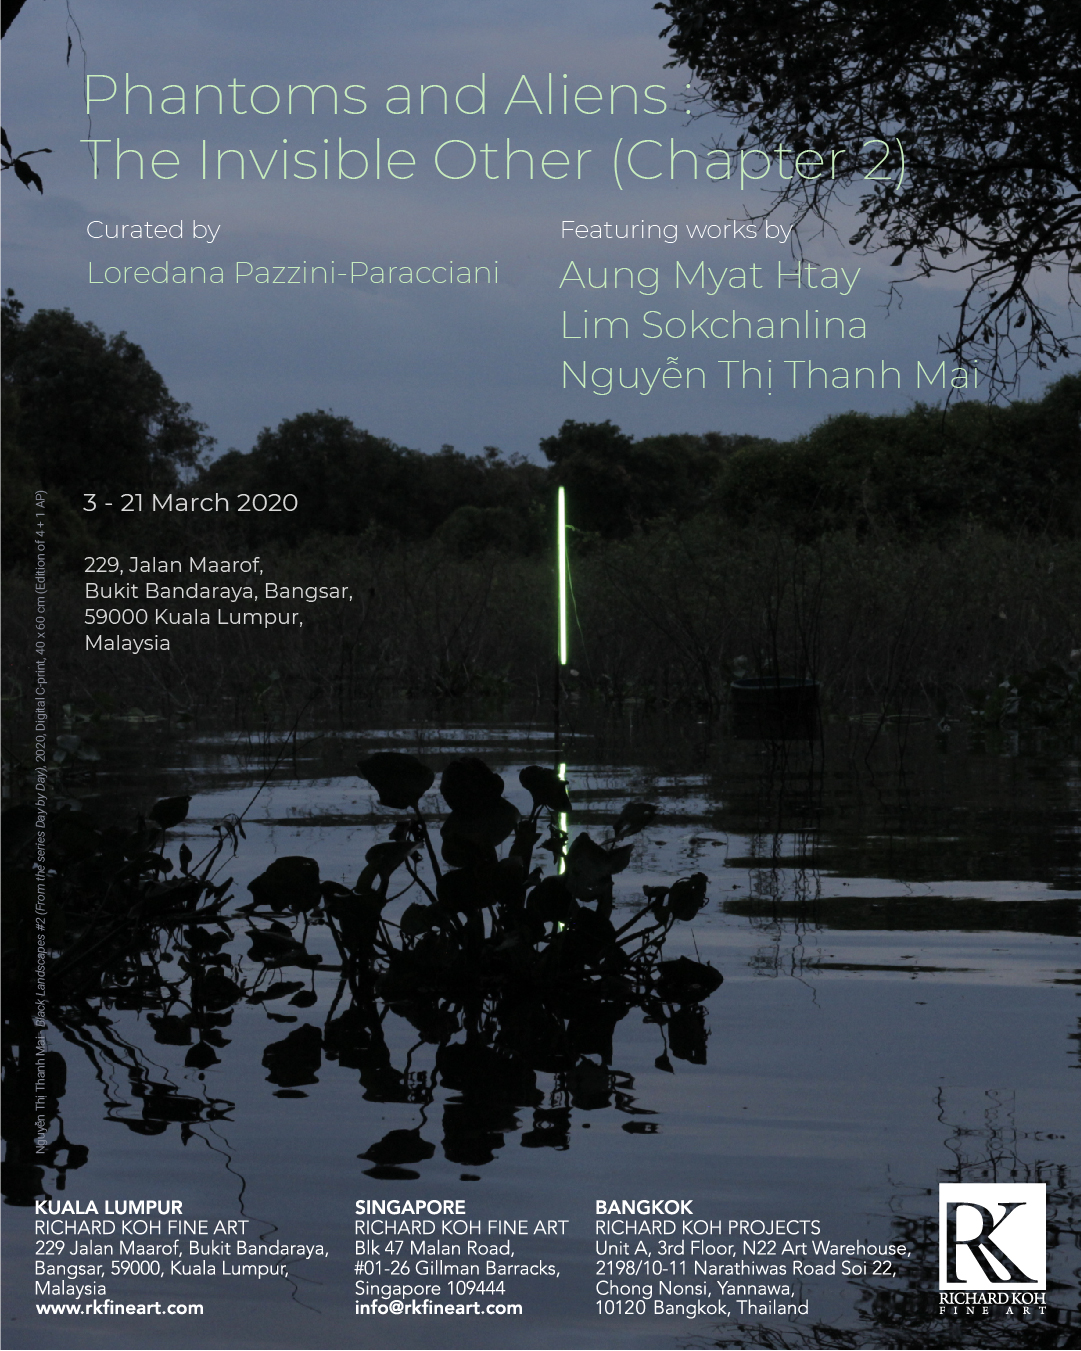 Aung Myat Htay, Lim Sokchanlina & Nguyễn Thị Thanh Mai – Phantoms and Aliens: The Invisible Other (Chapter 2)